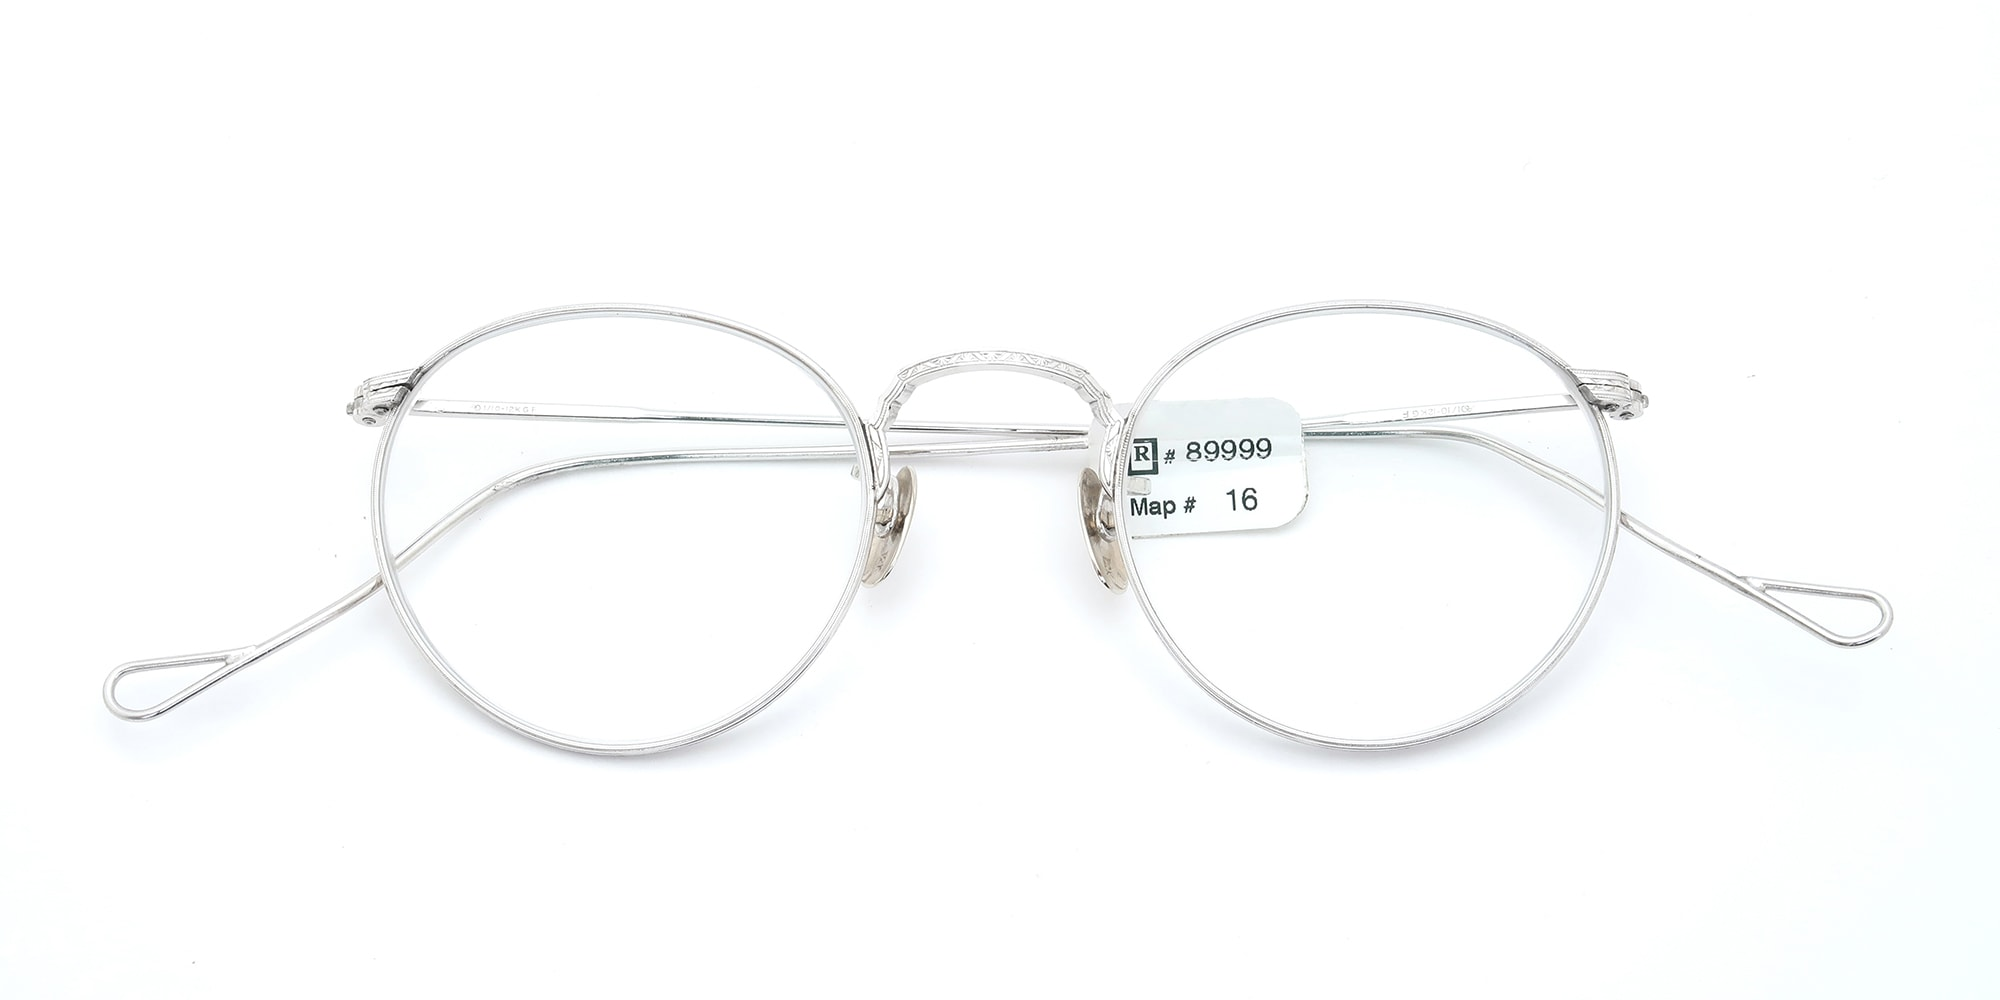 The Spectacle メガネ 1930s-40s American Optical Full-Frame Ful-Vue WG 44-22 イメージ5